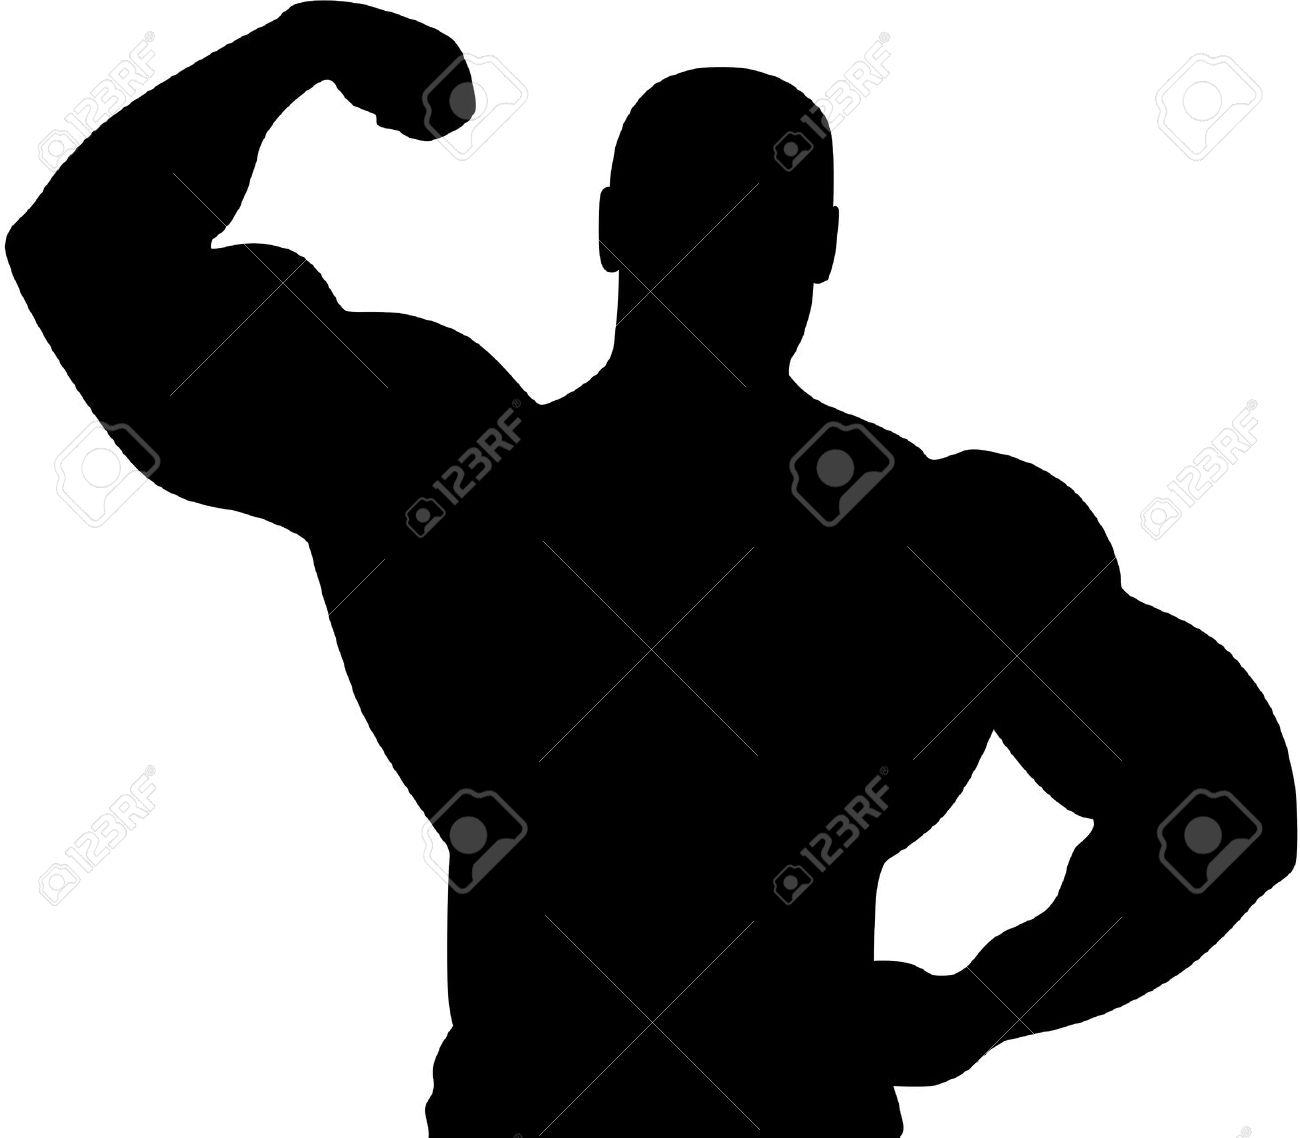 Arms clipart fitness. Muscle silhouette at getdrawings